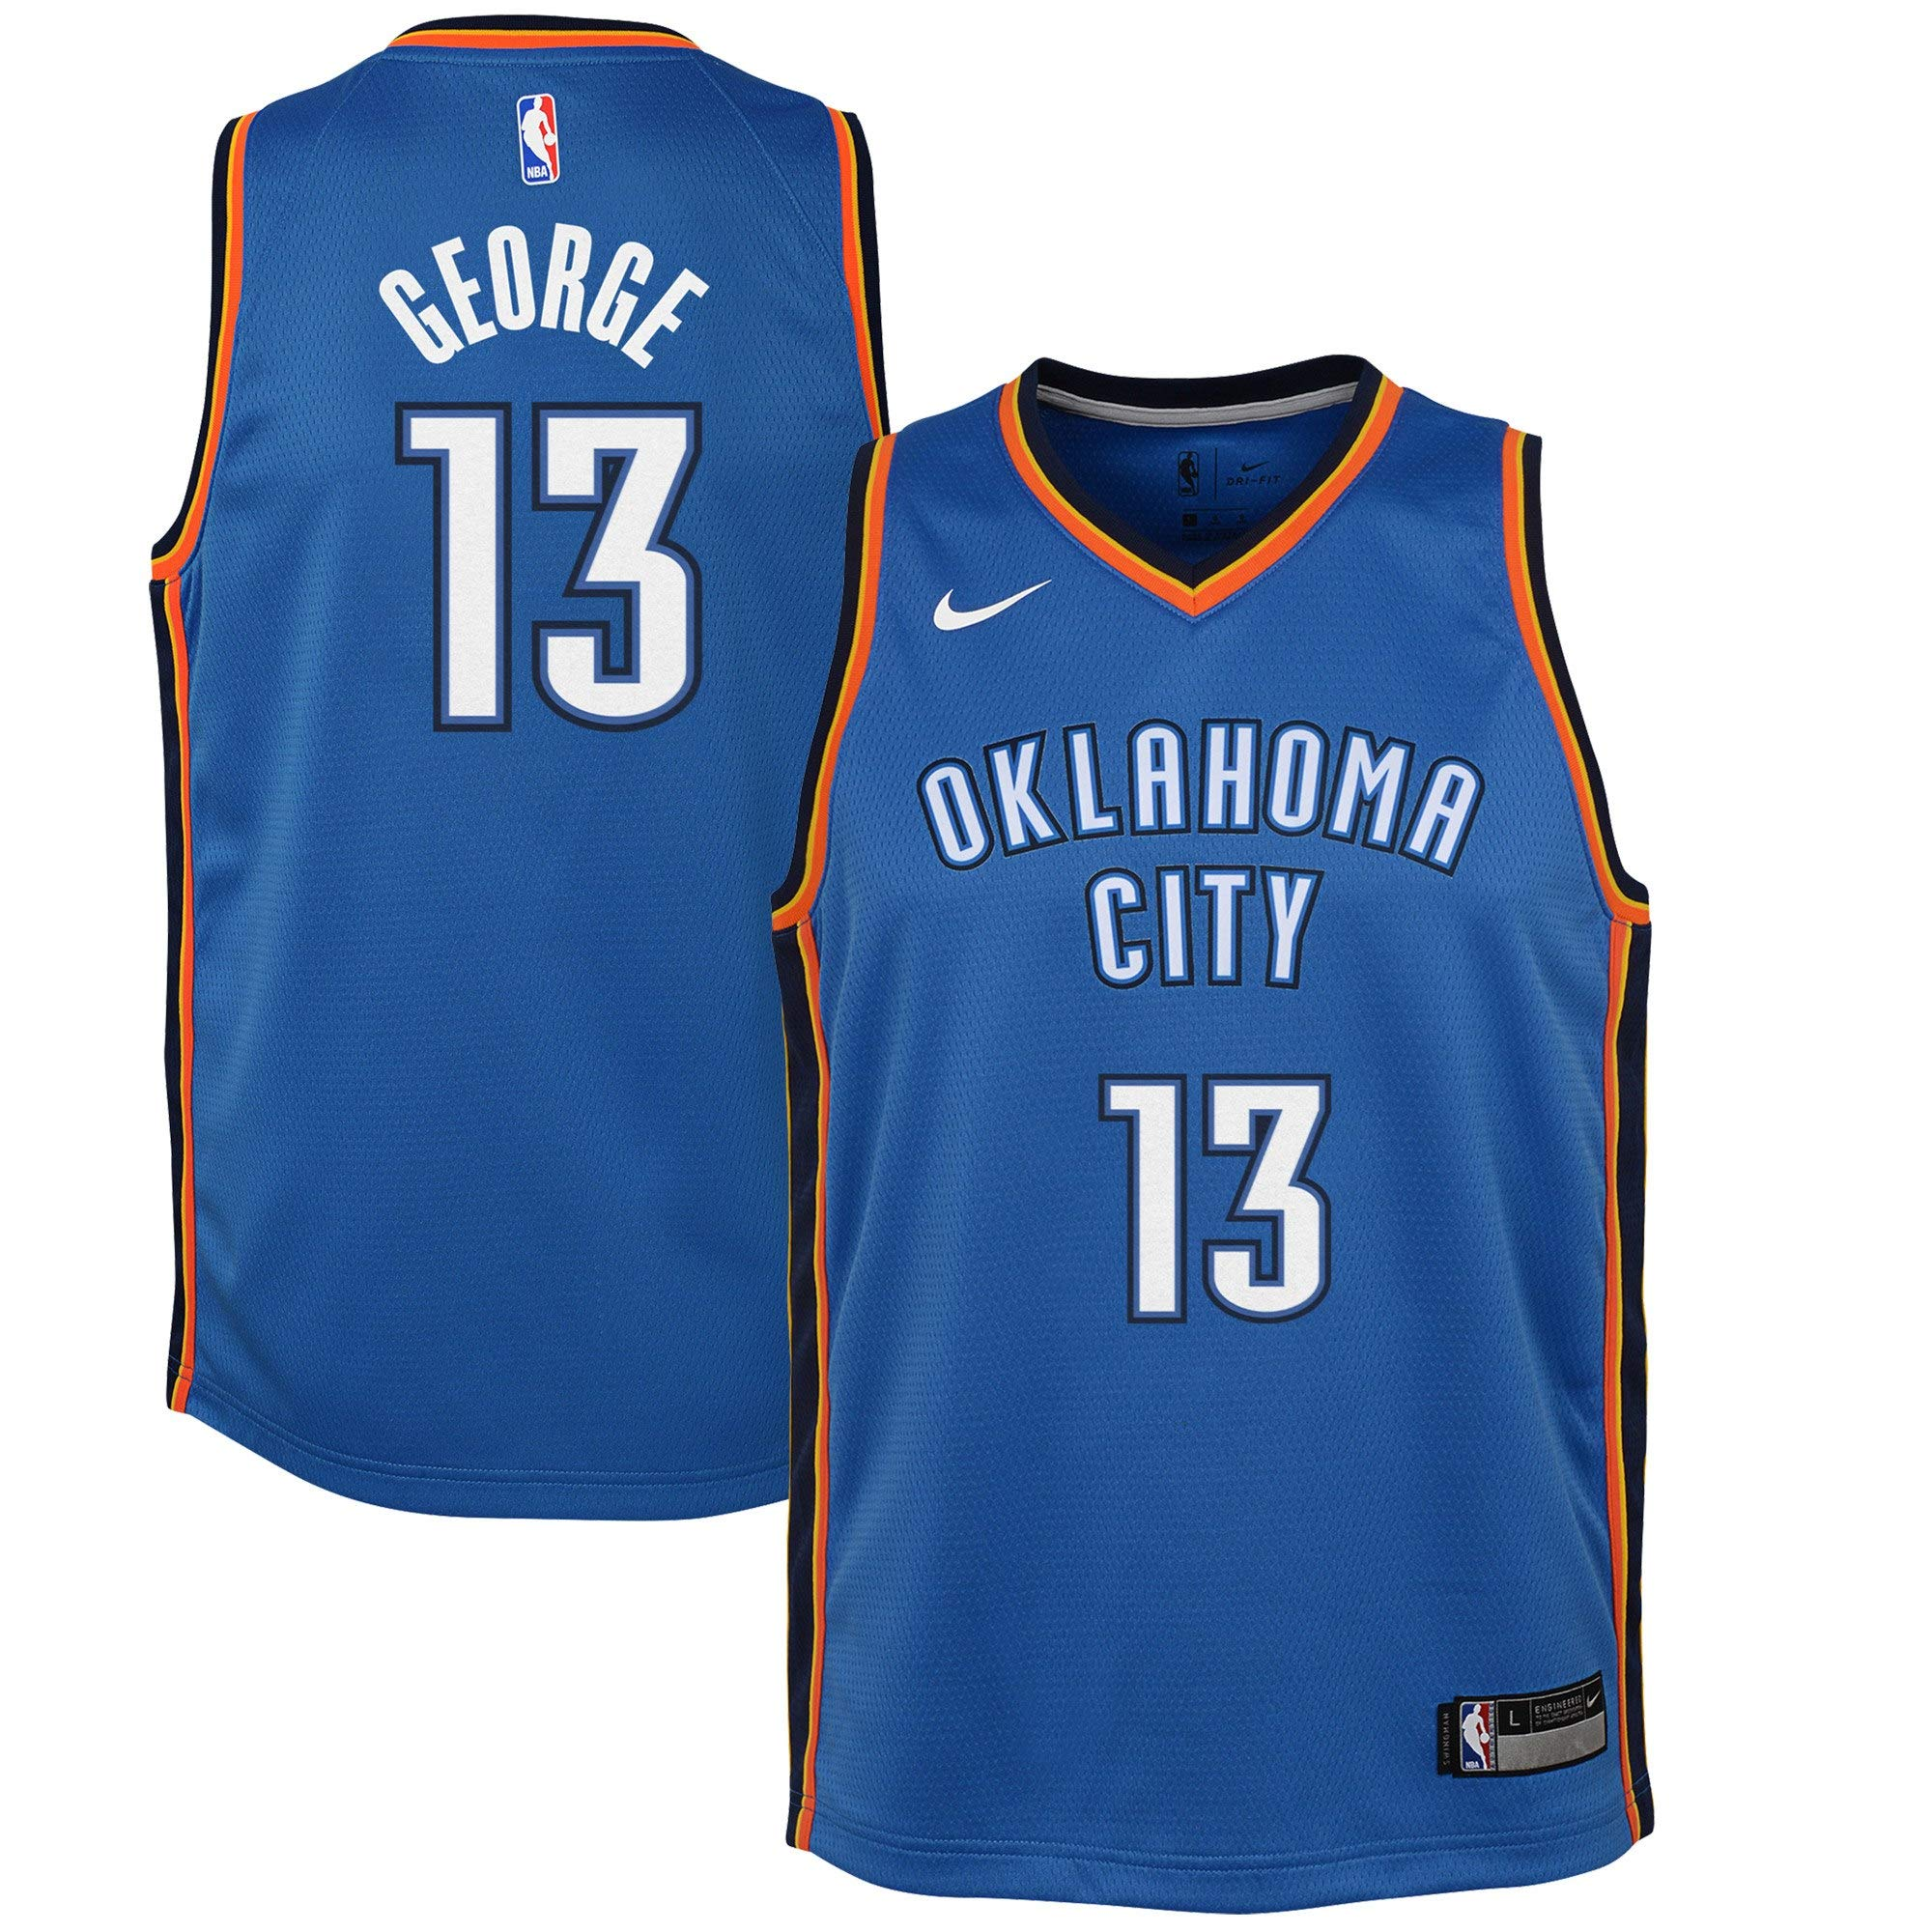 Nike Youth Paul George Oklahoma City Thunder Icon Edition Jersey - Blue (Gold, Youth Large (14-16)) by Nike (Image #1)